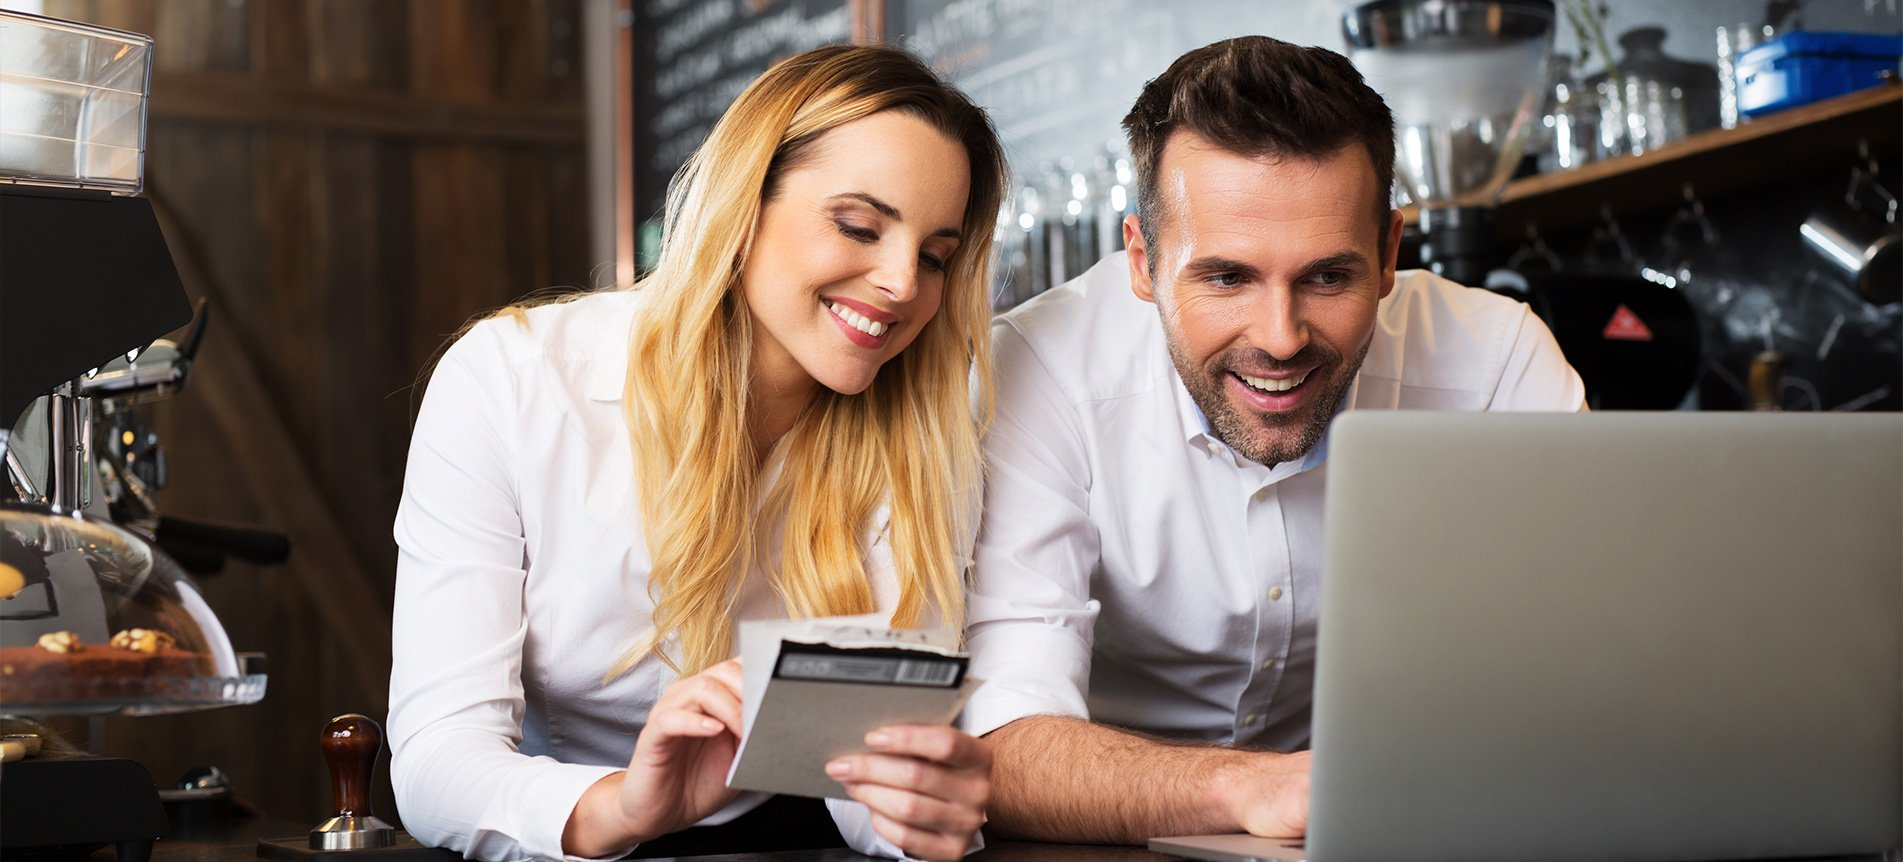 restaurant owners looking at website